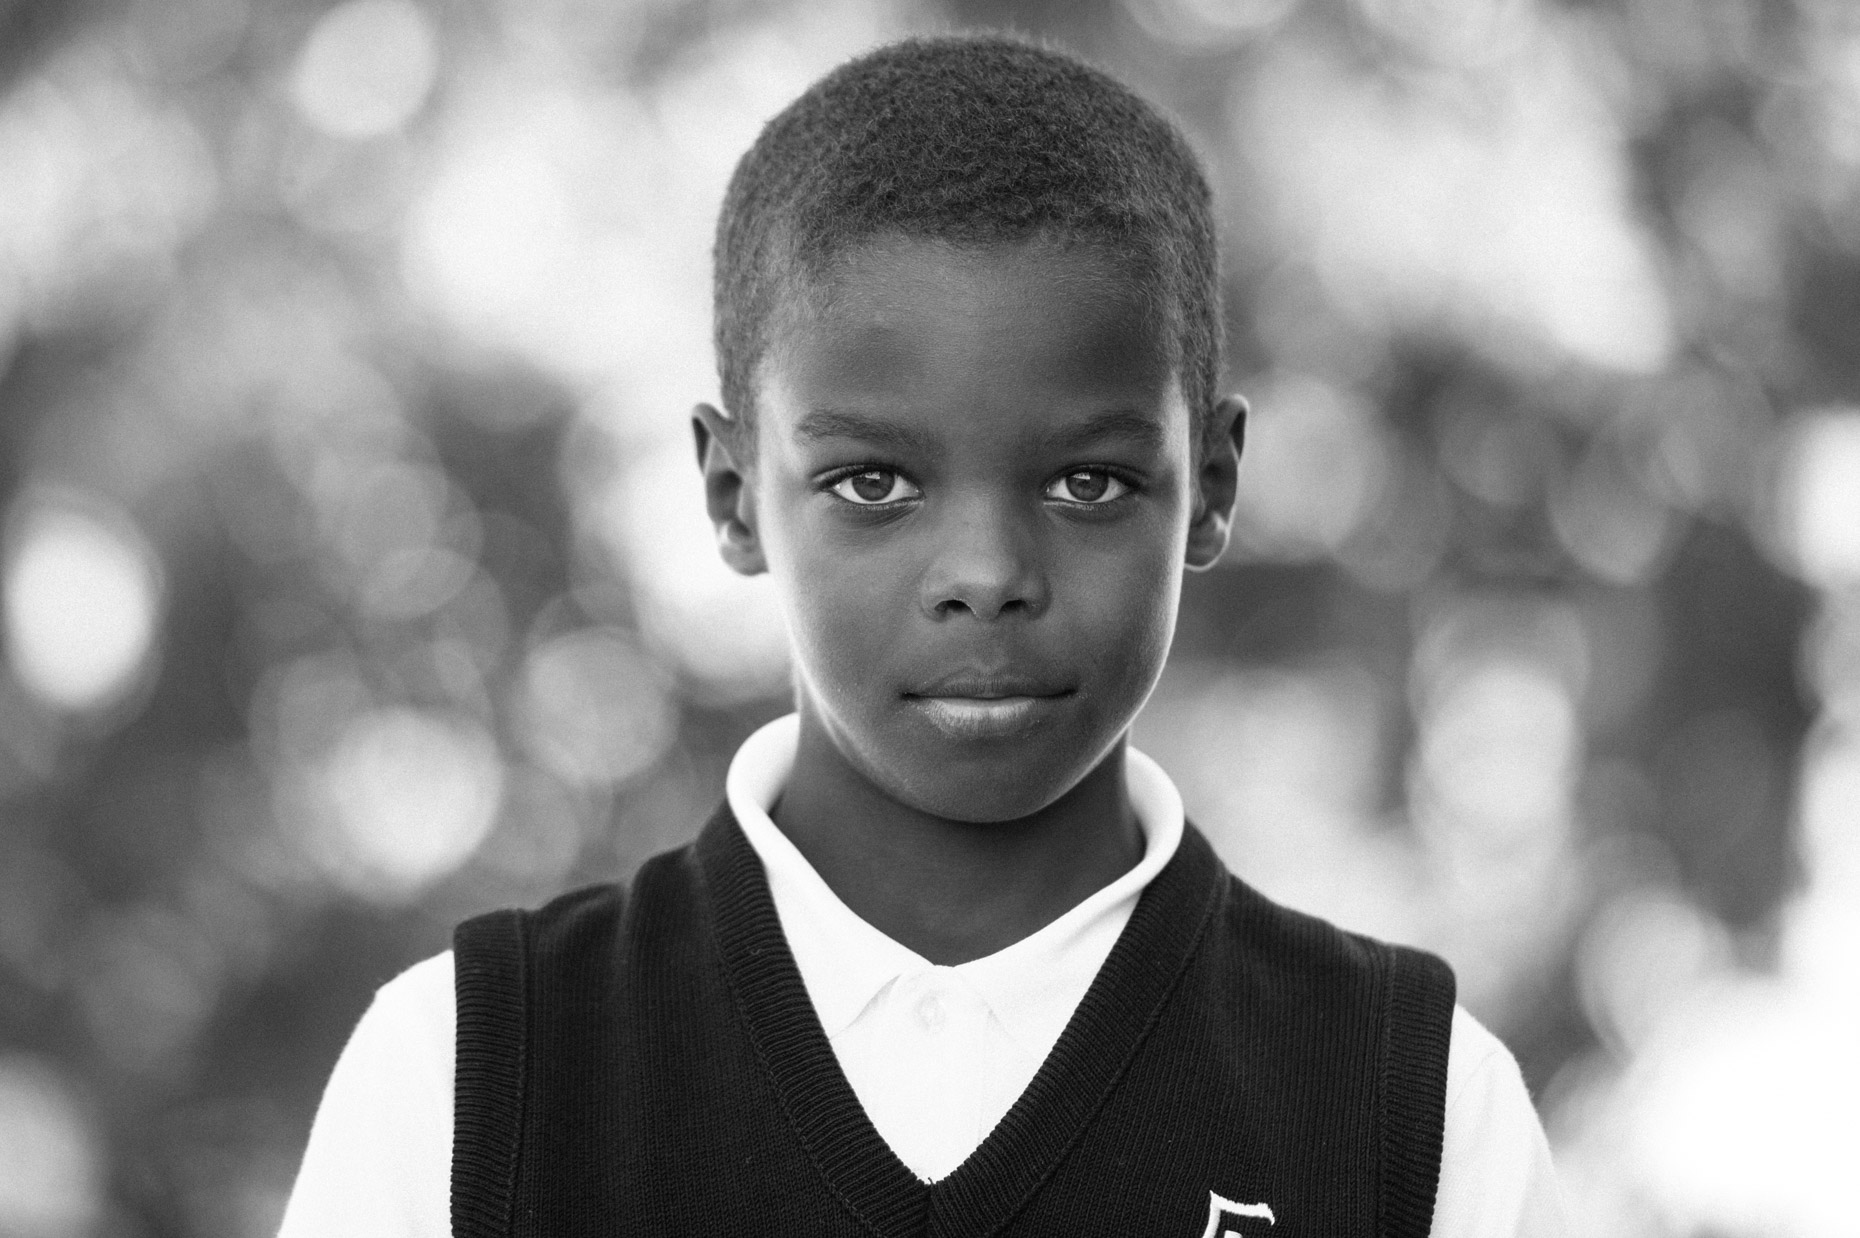 schoolportrait_episcopal8956